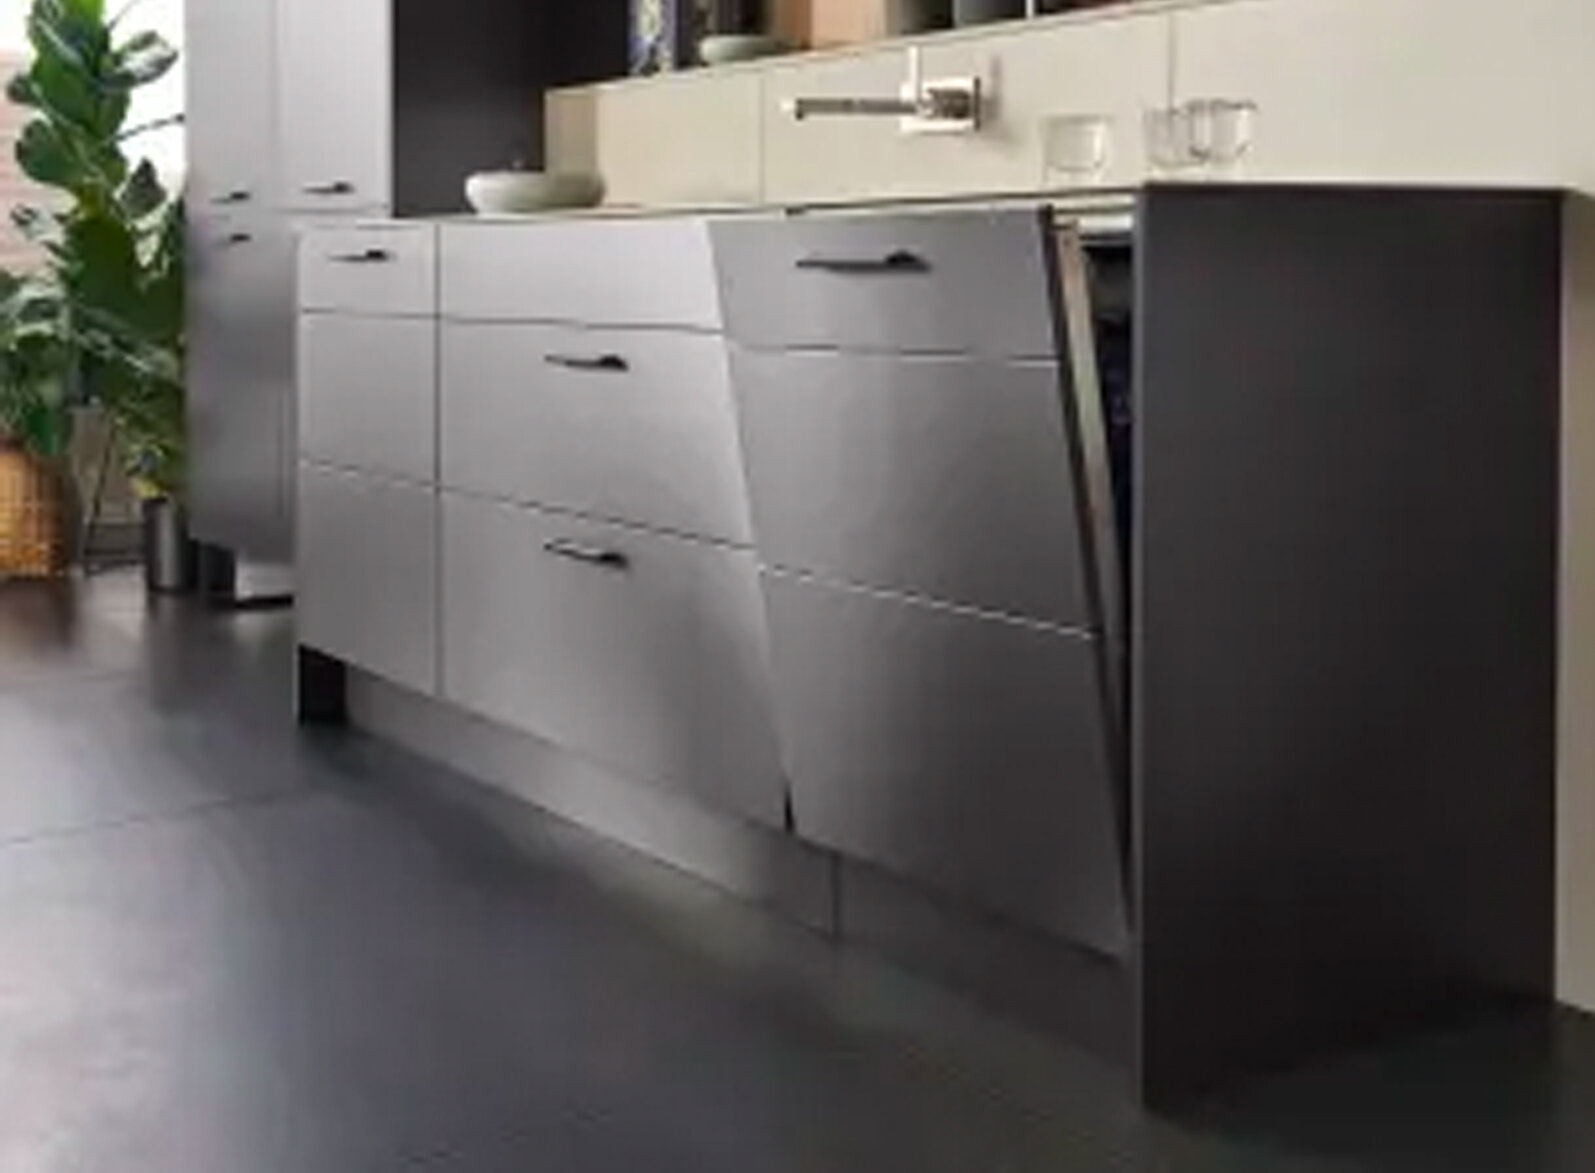 VARIABLE FRONT DIVISION  In the standard version, this dishwasher front is one element or, as shown here, divided to suit the adjacent units